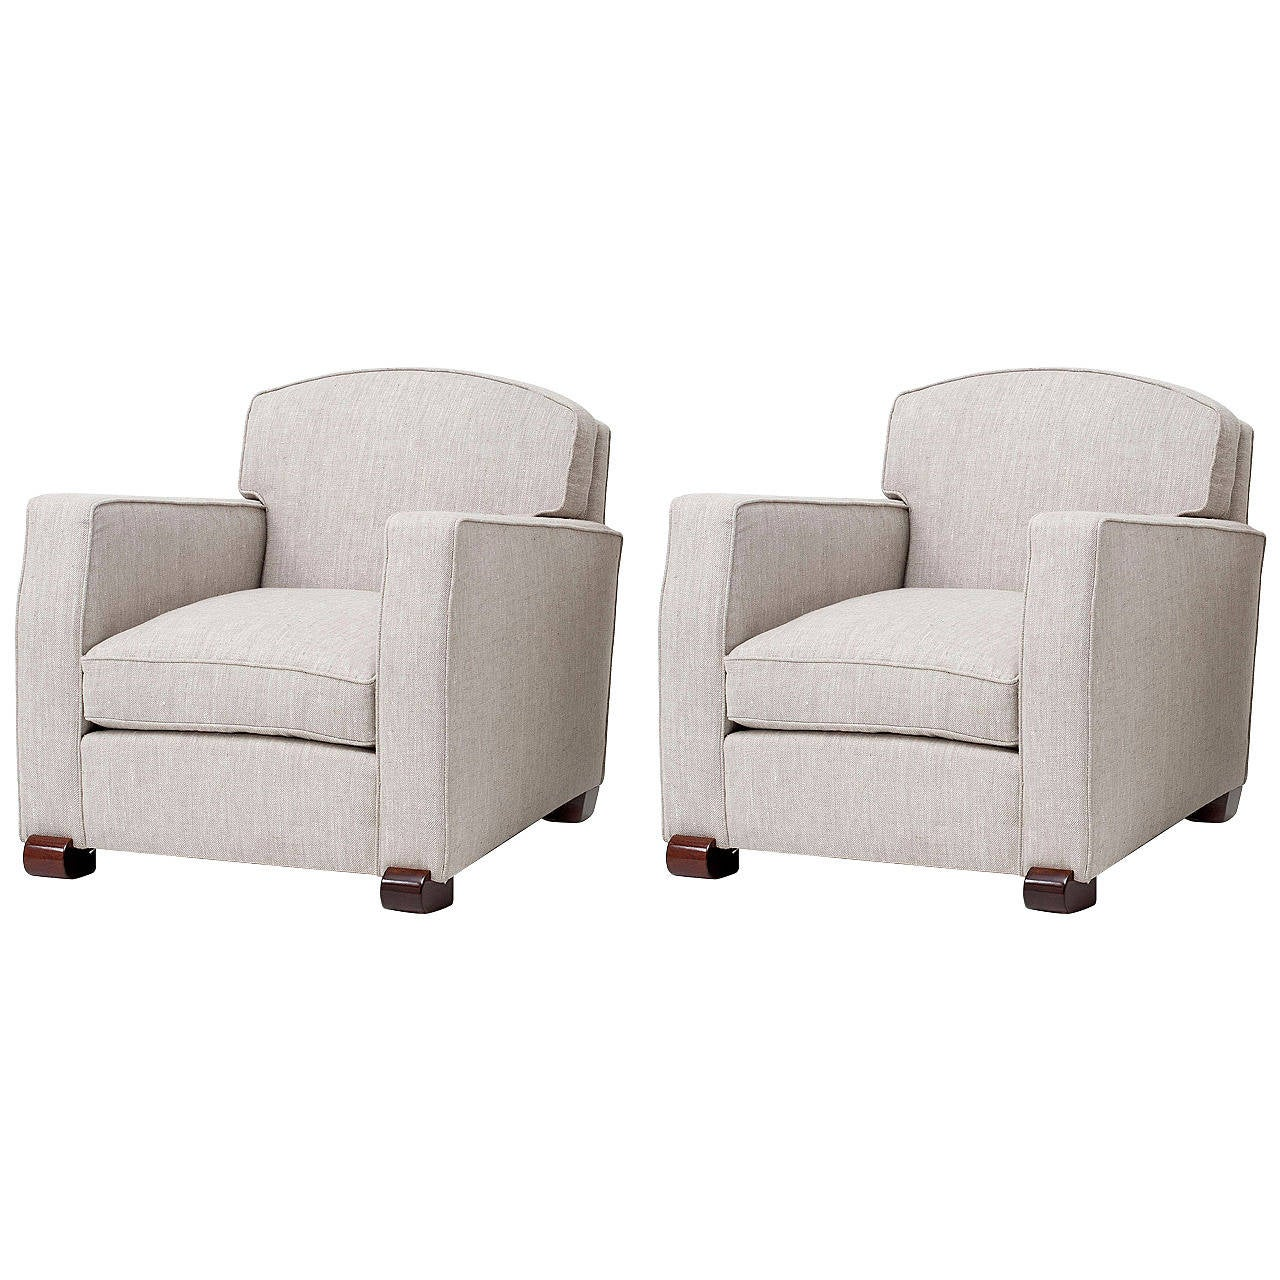 Maison Leleu, Pair of Club Chairs, France, C. 1946 For Sale